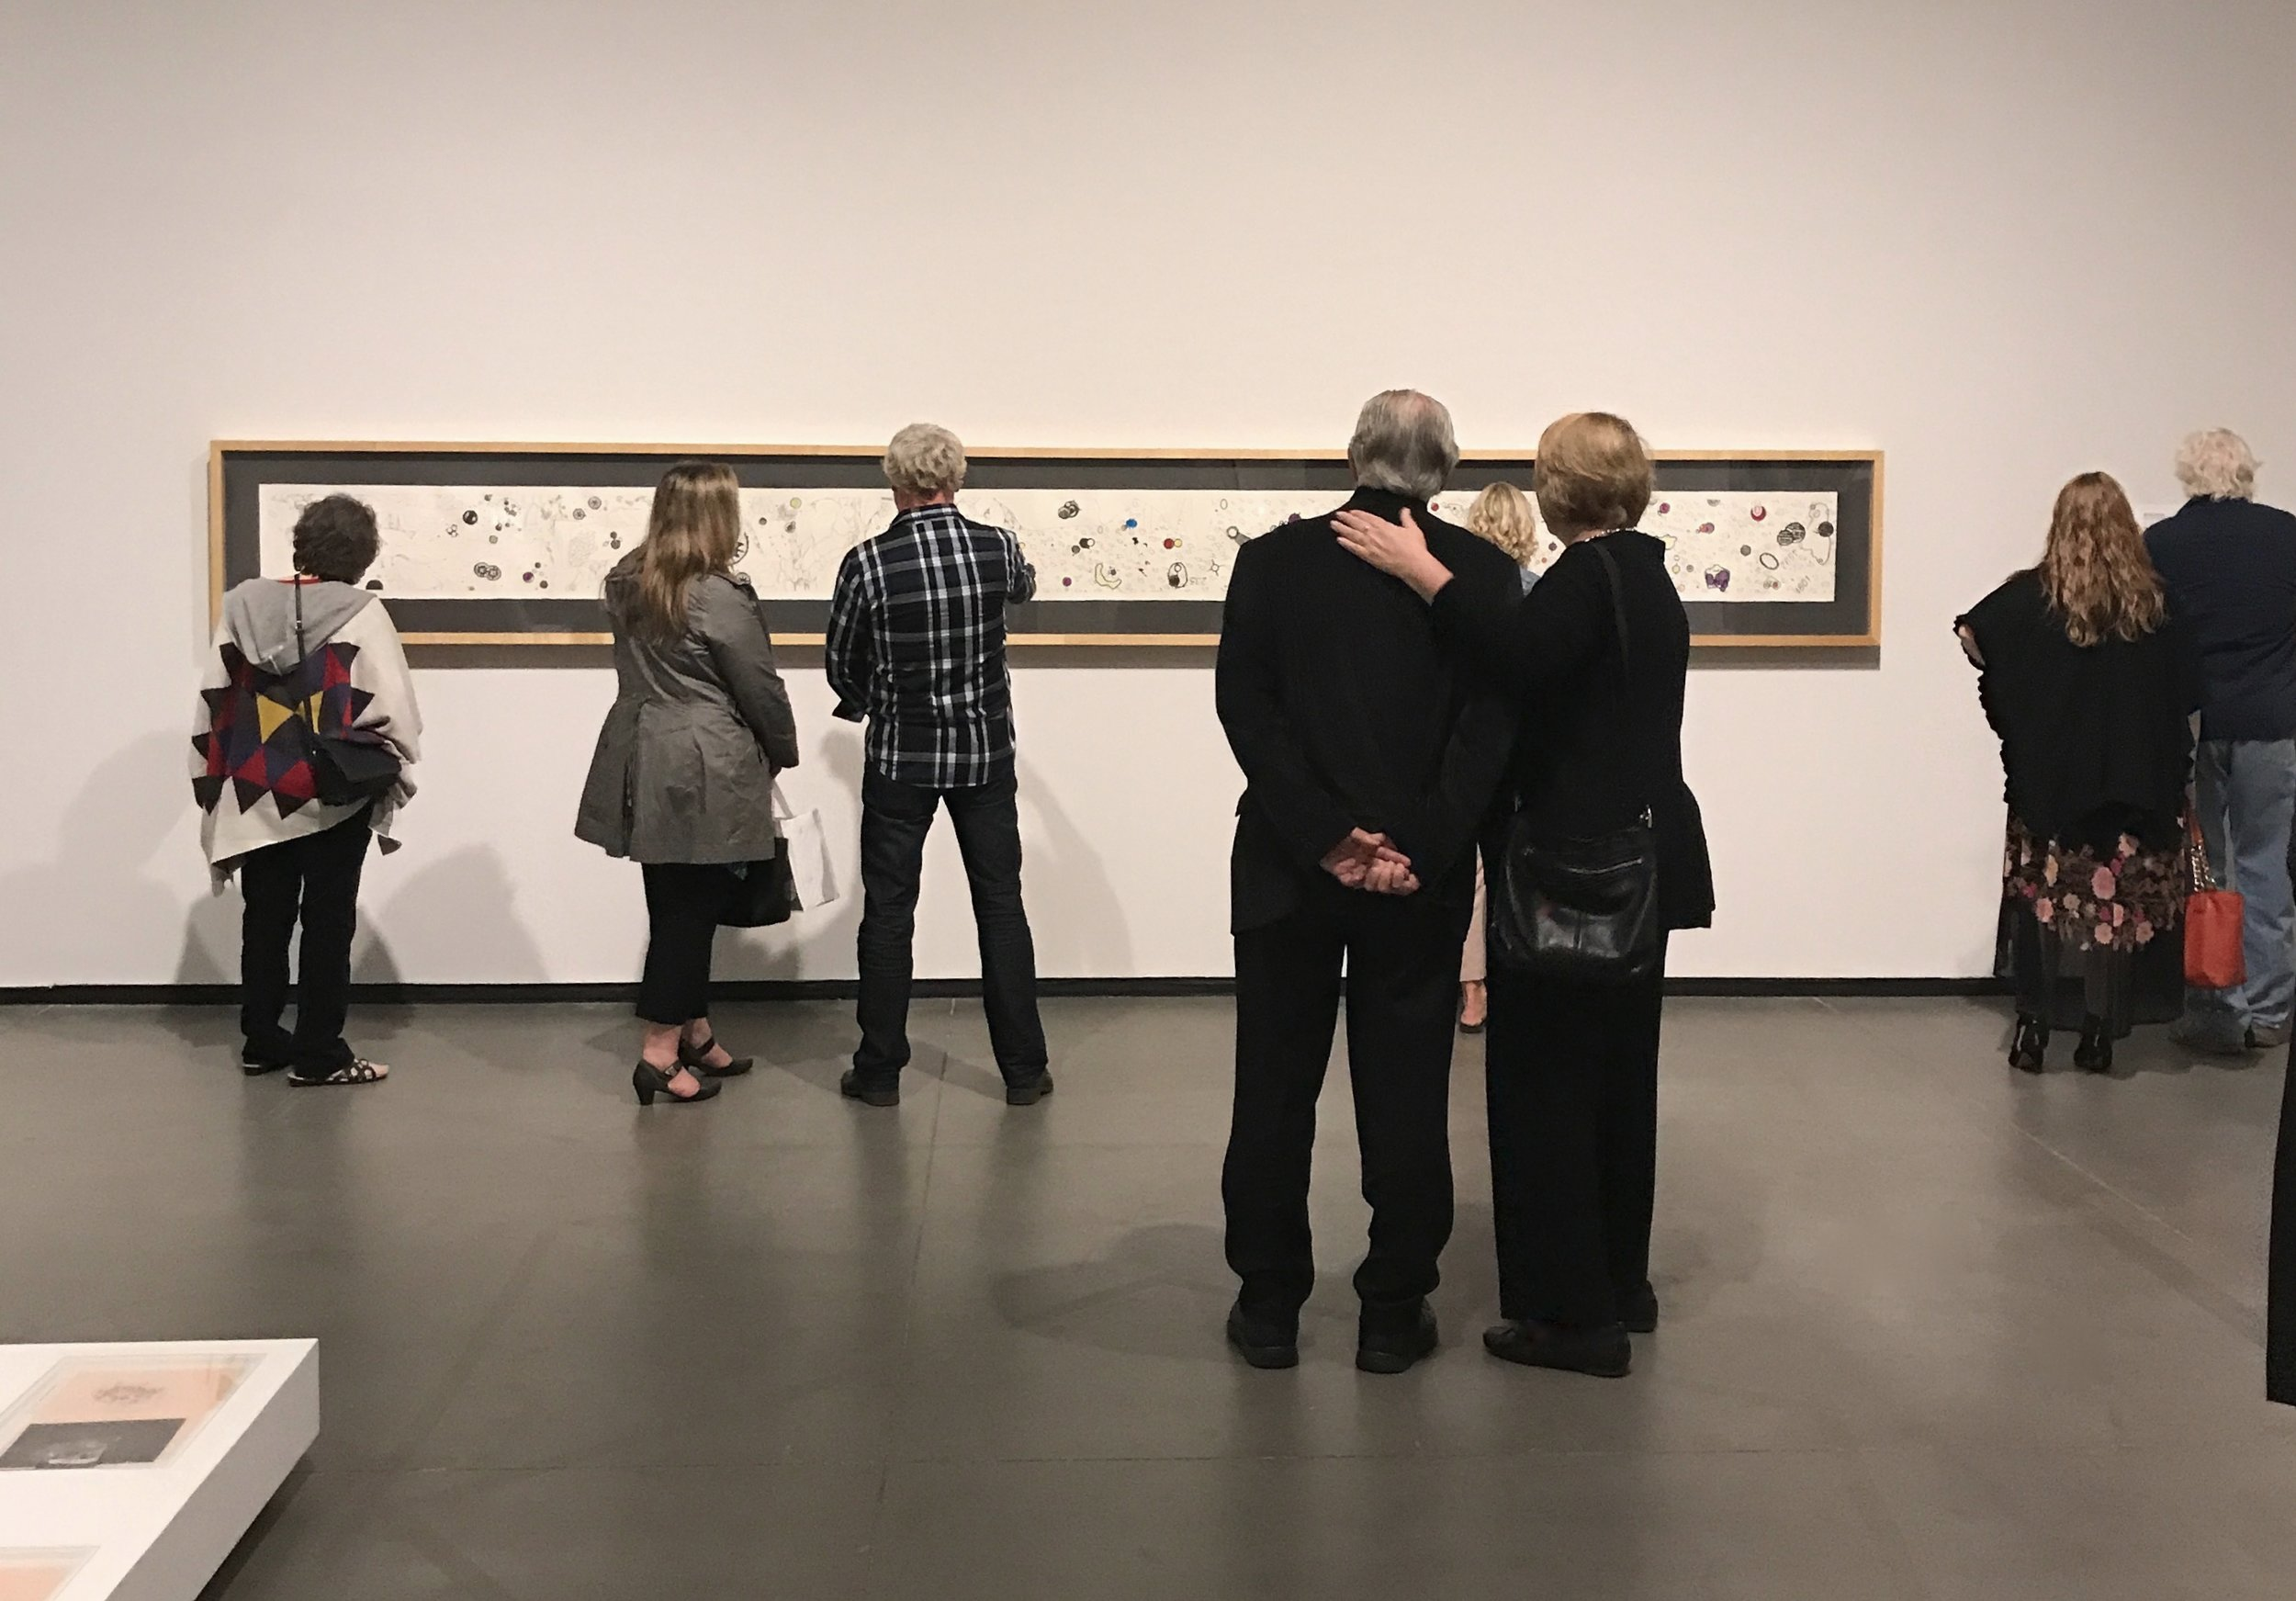 Turbulent Landings: The NGC 2017 Canadian Biennial , Art Gallery of Alberta, Edmonton,Alberta, curated by Catherine Crowston, Josee Drouin-Brisebois, and Jonathan Shaughnessy.